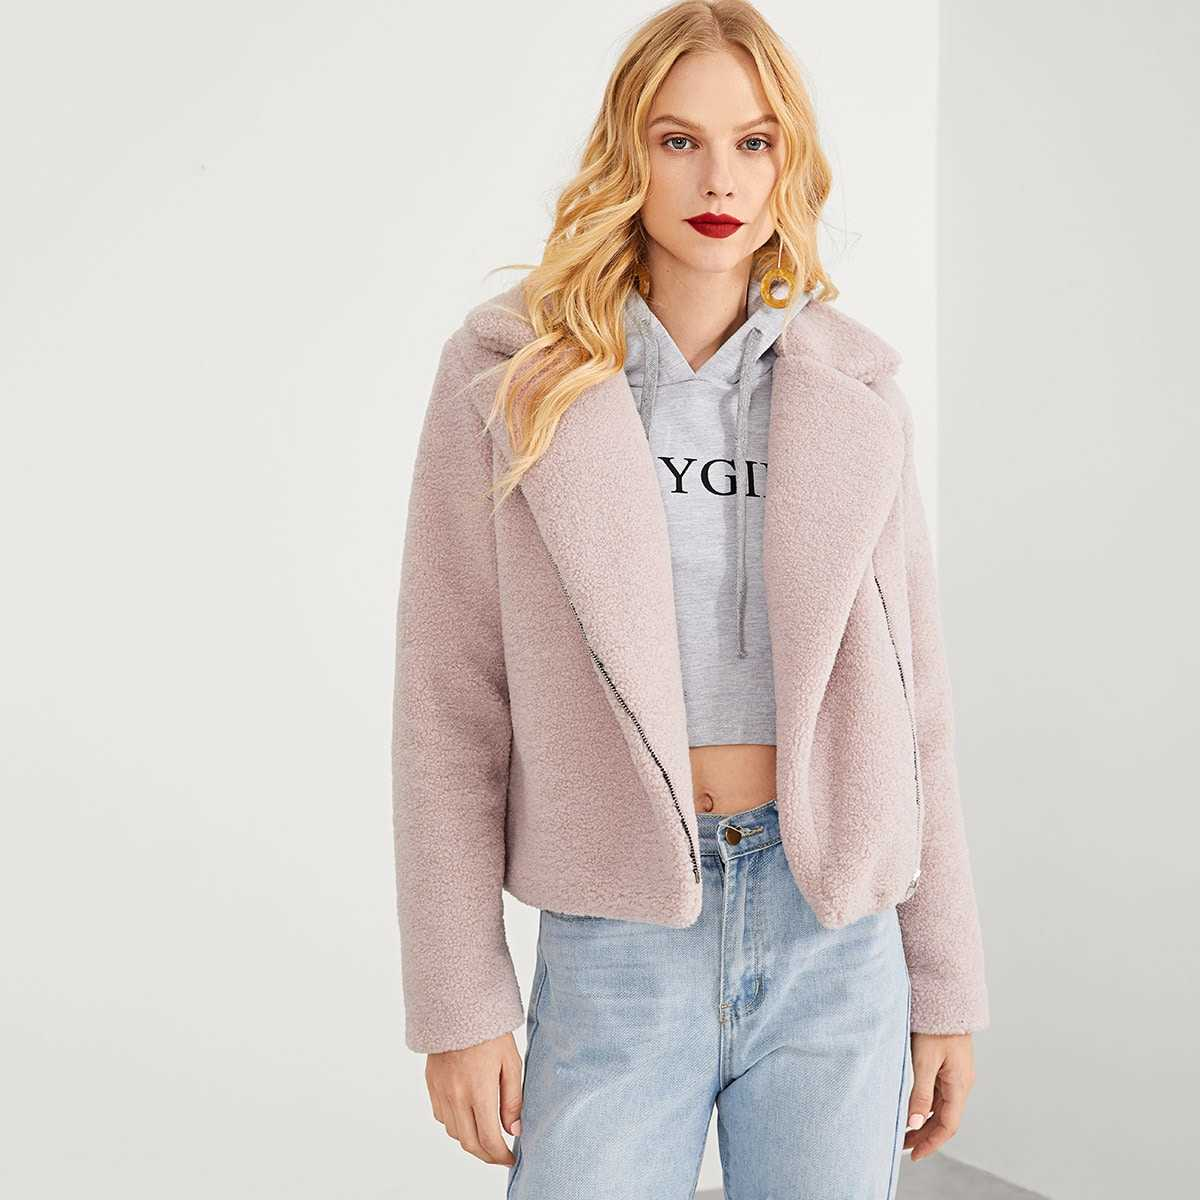 Zip Front Notched Neck Solid Teddy Coat in Pink by ROMWE on GOOFASH